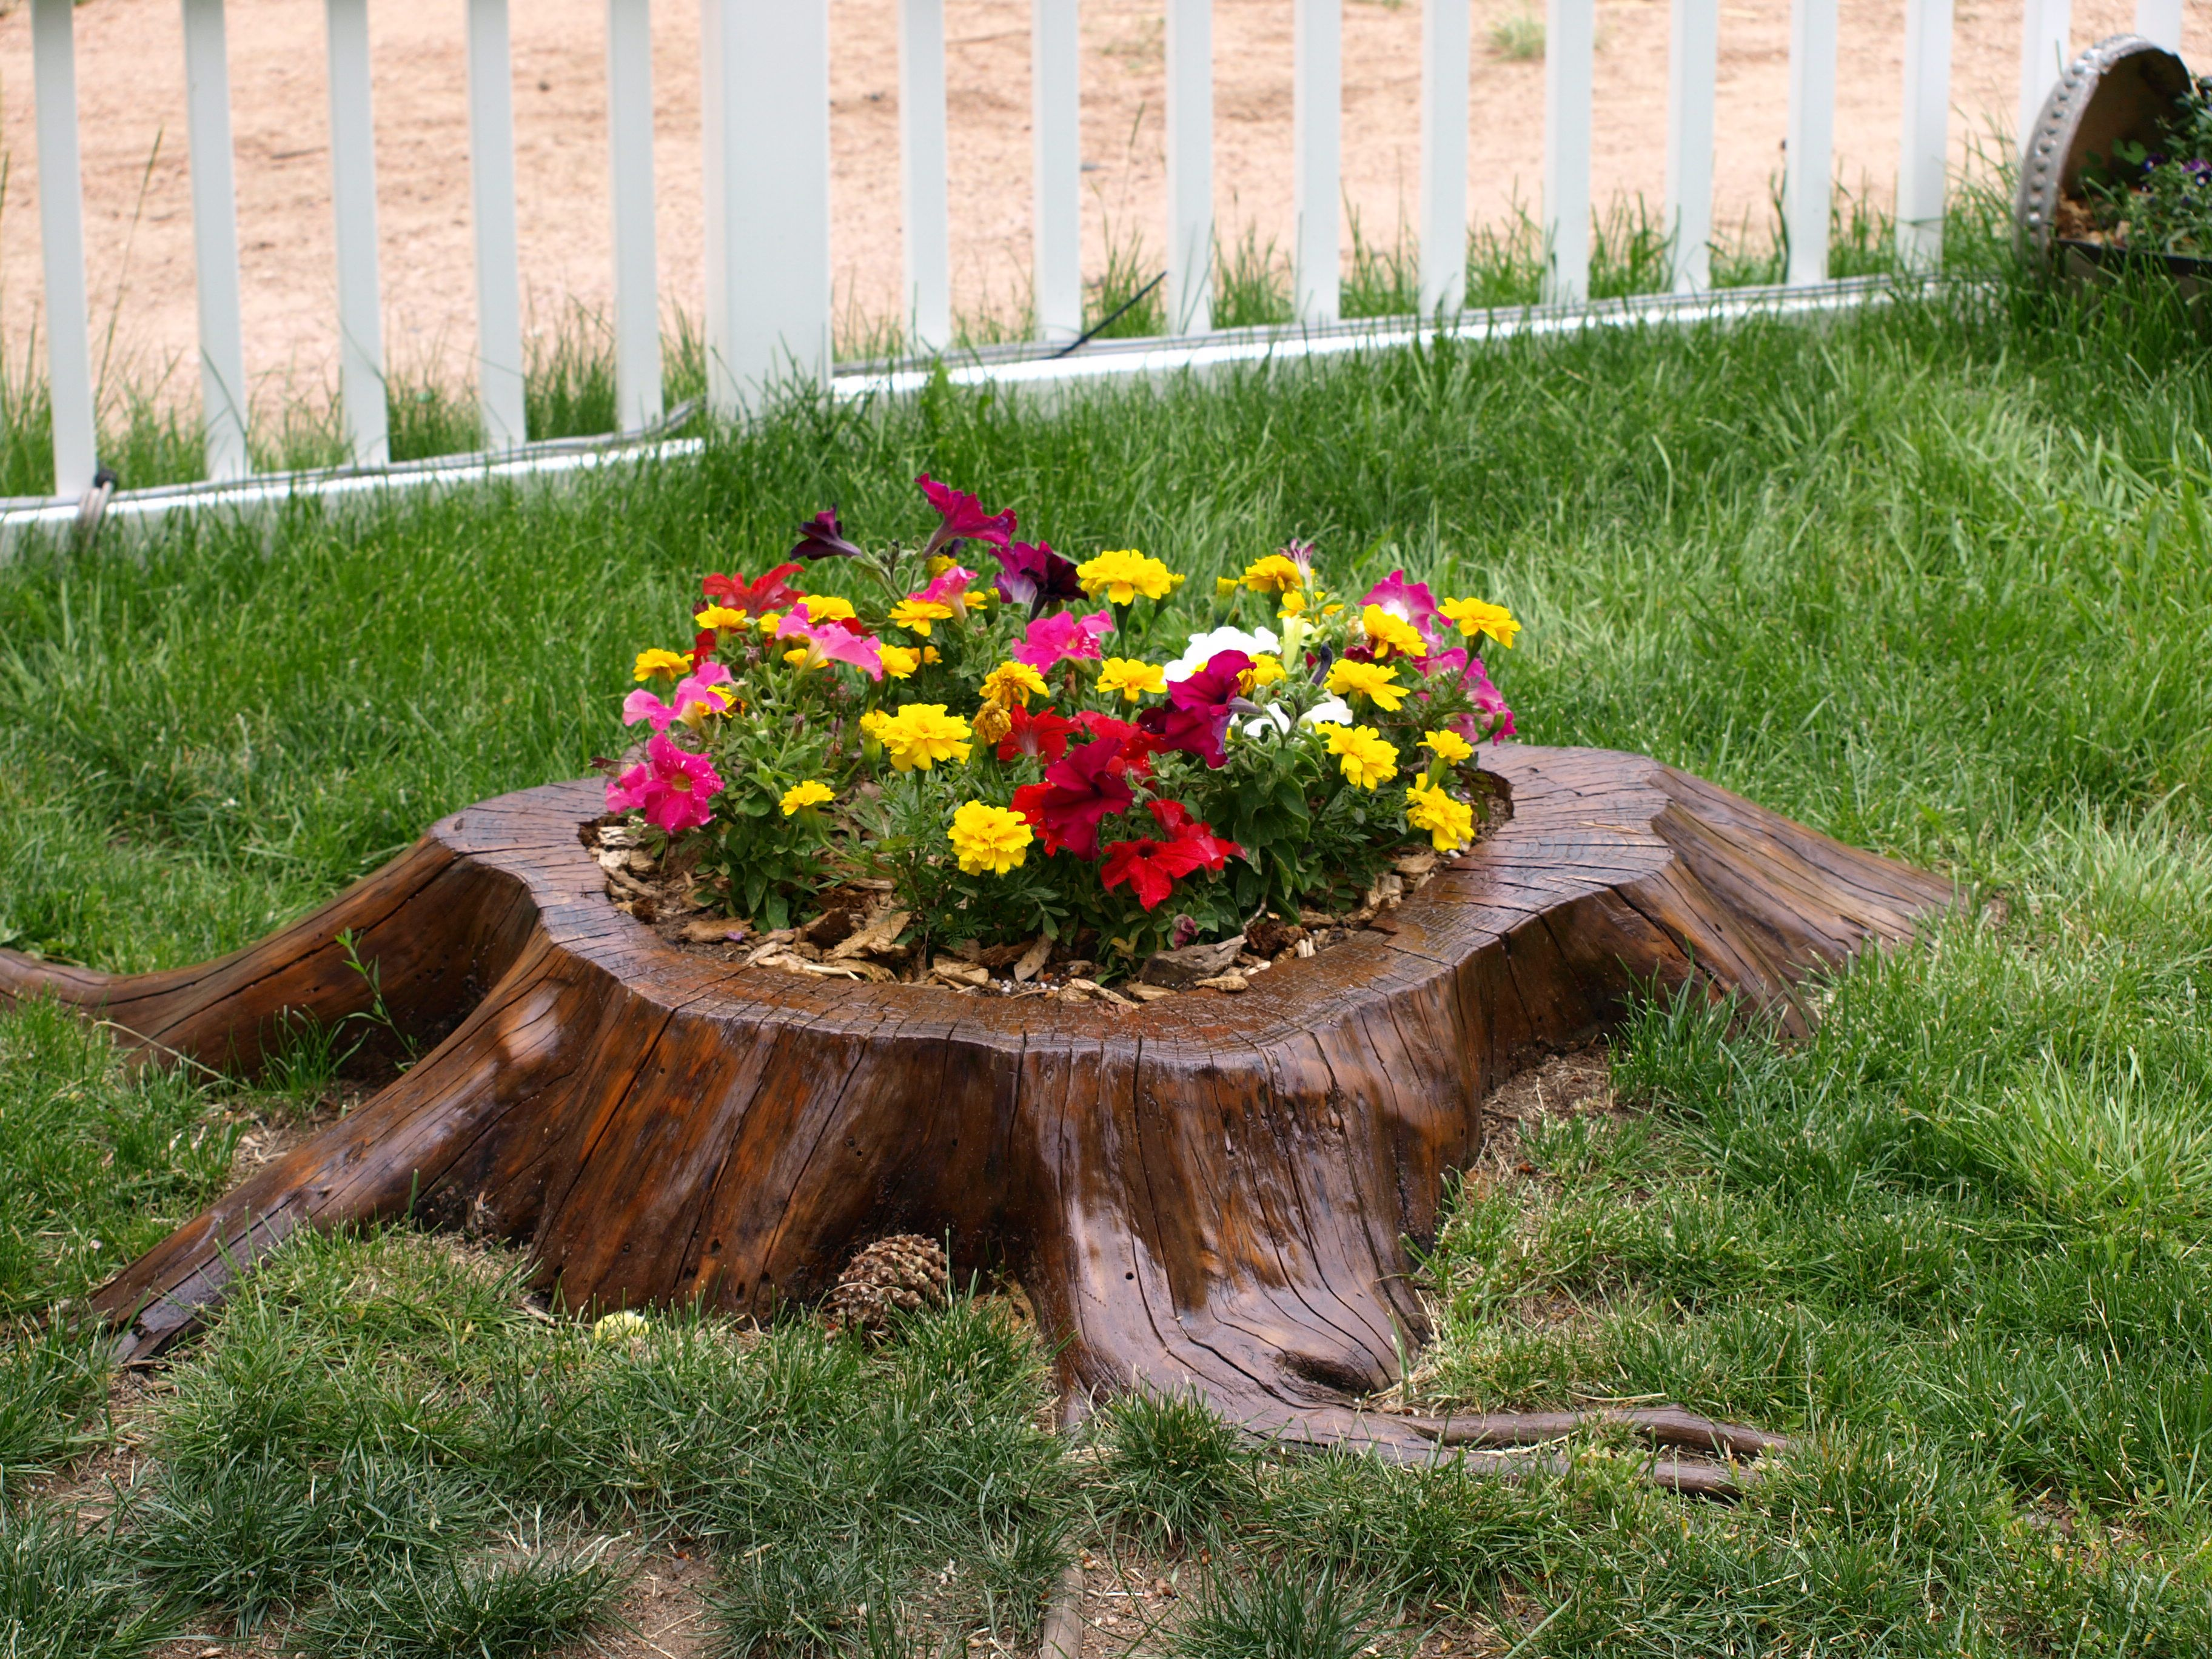 The tree stump in my yard that I turned into a planter